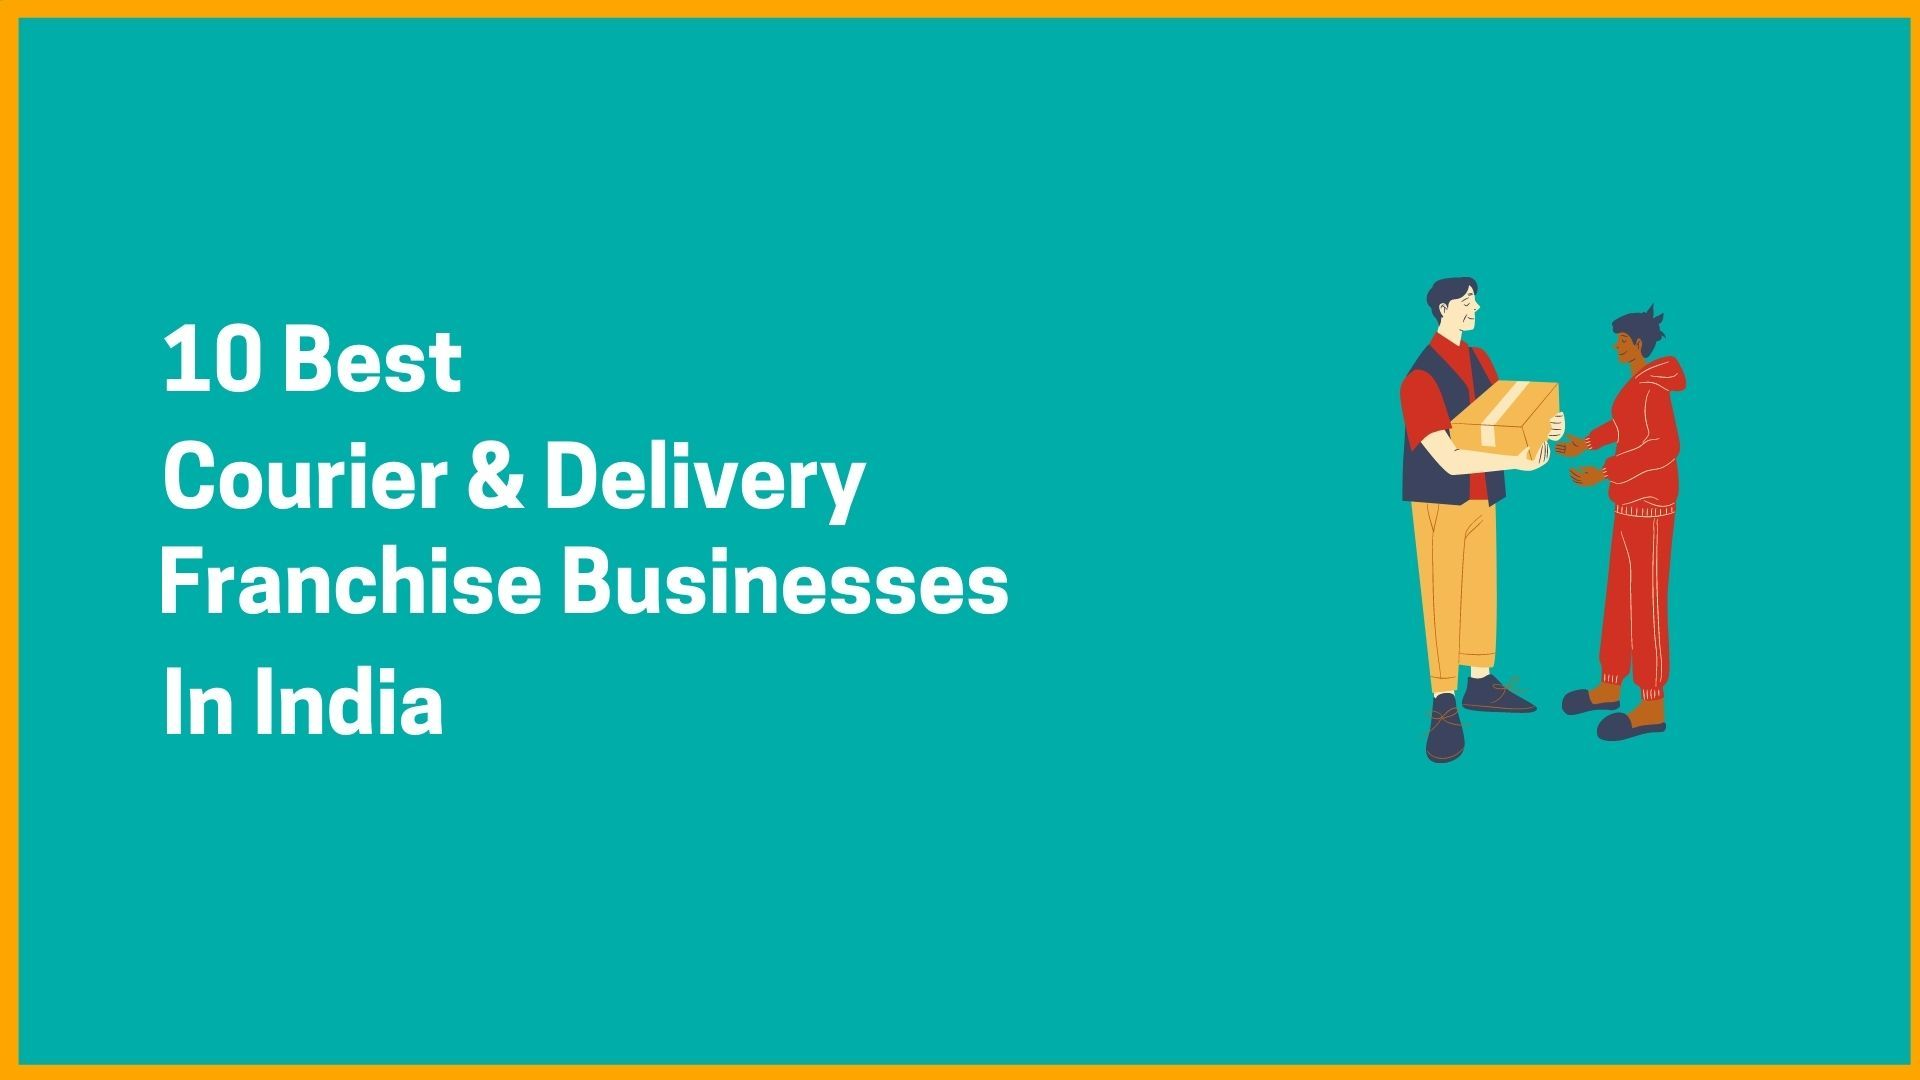 Top Courier & Delivery Franchise Businesses in India